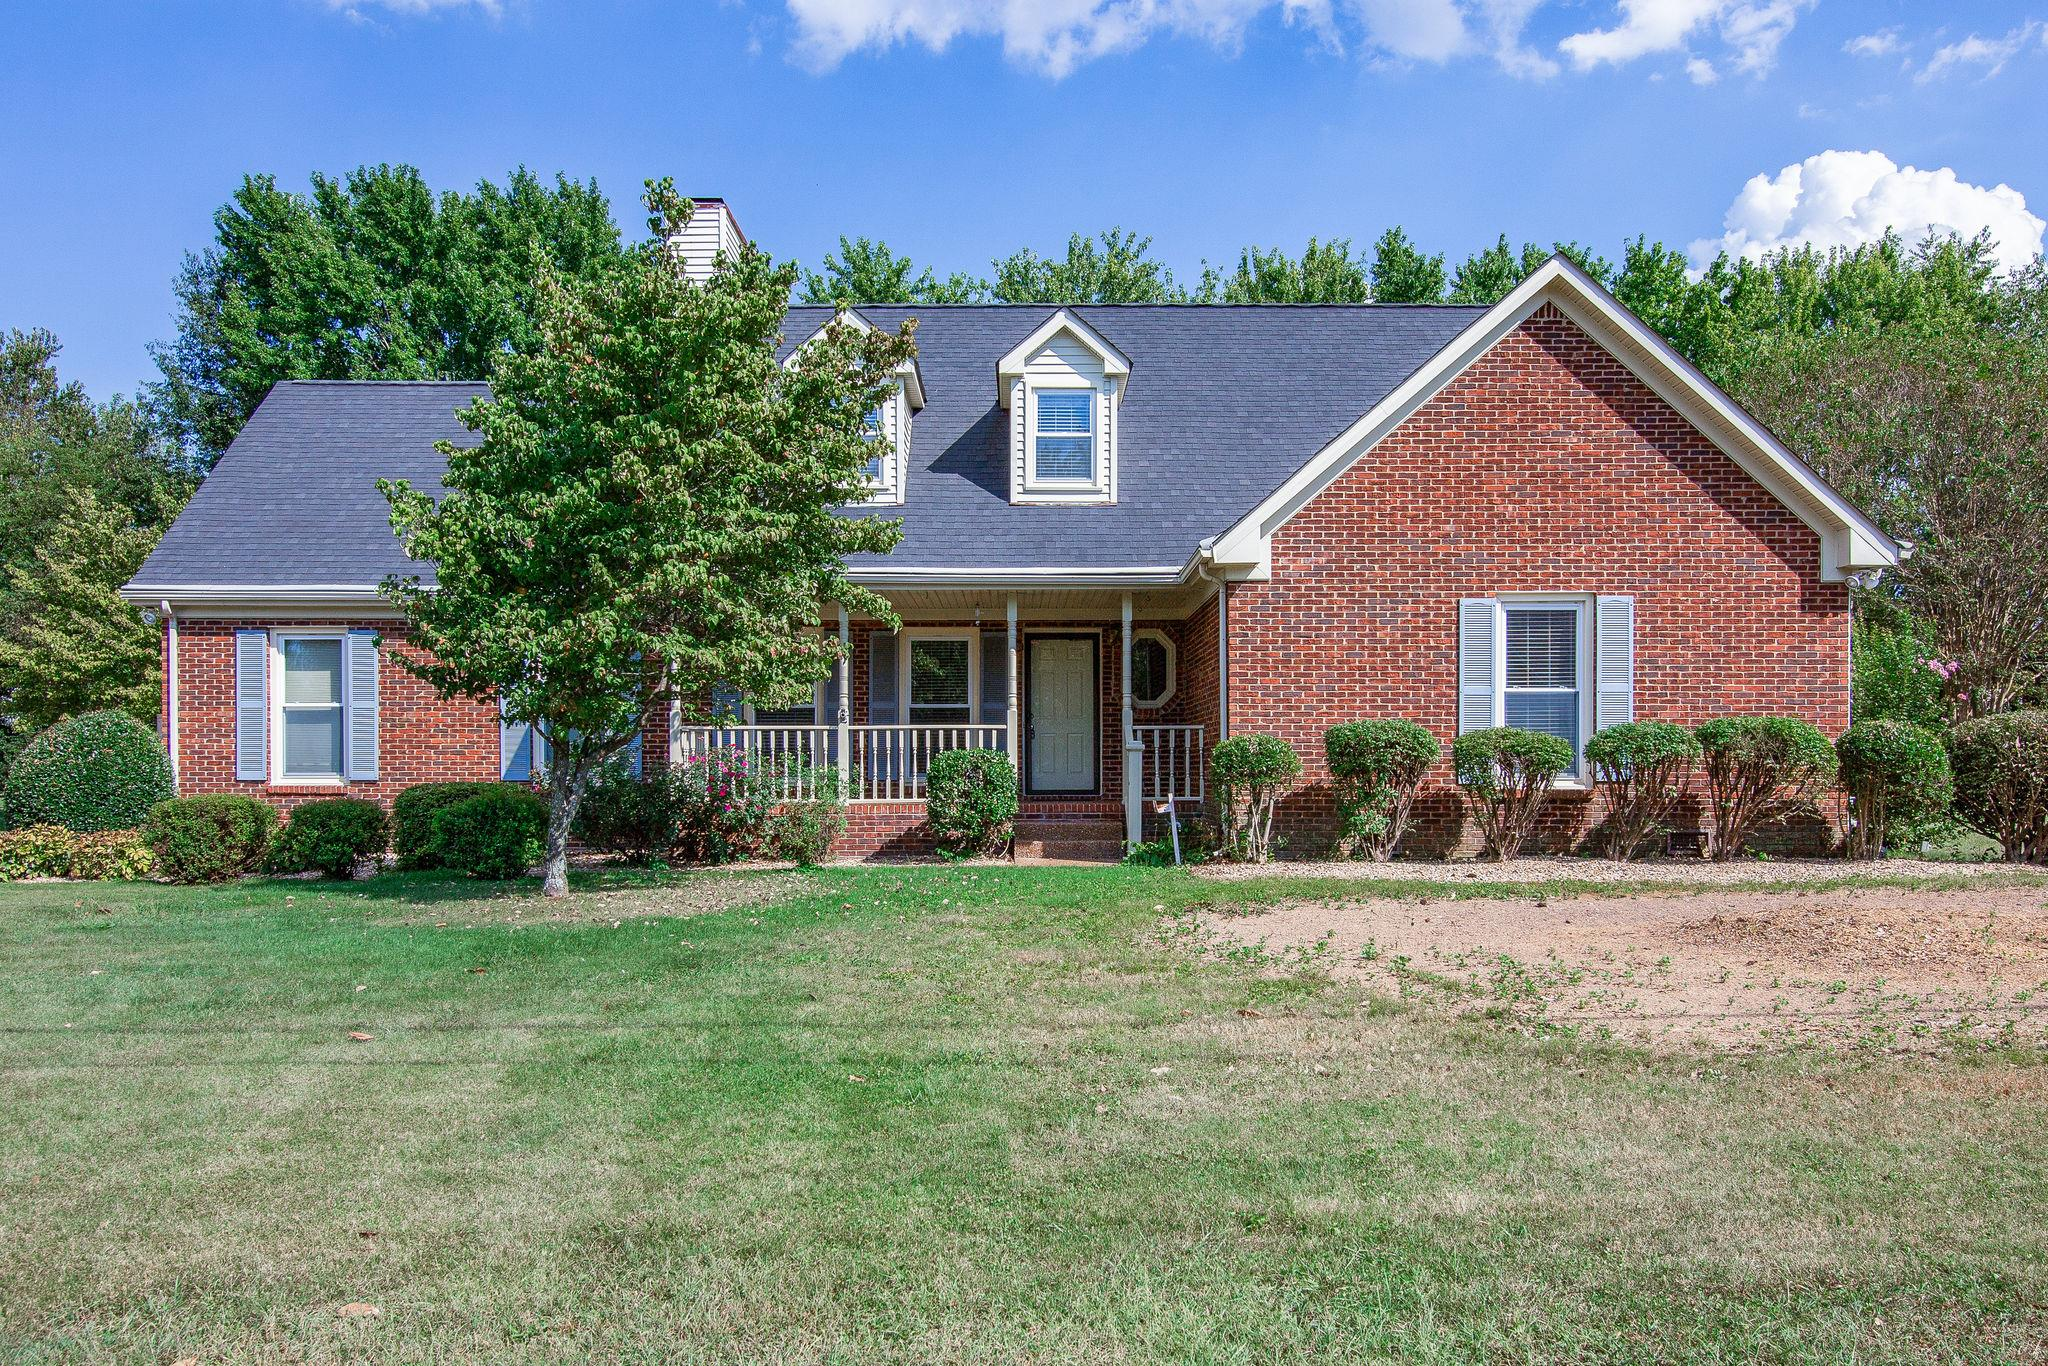 2816 Windy Way, Thompsons Station, TN 37179